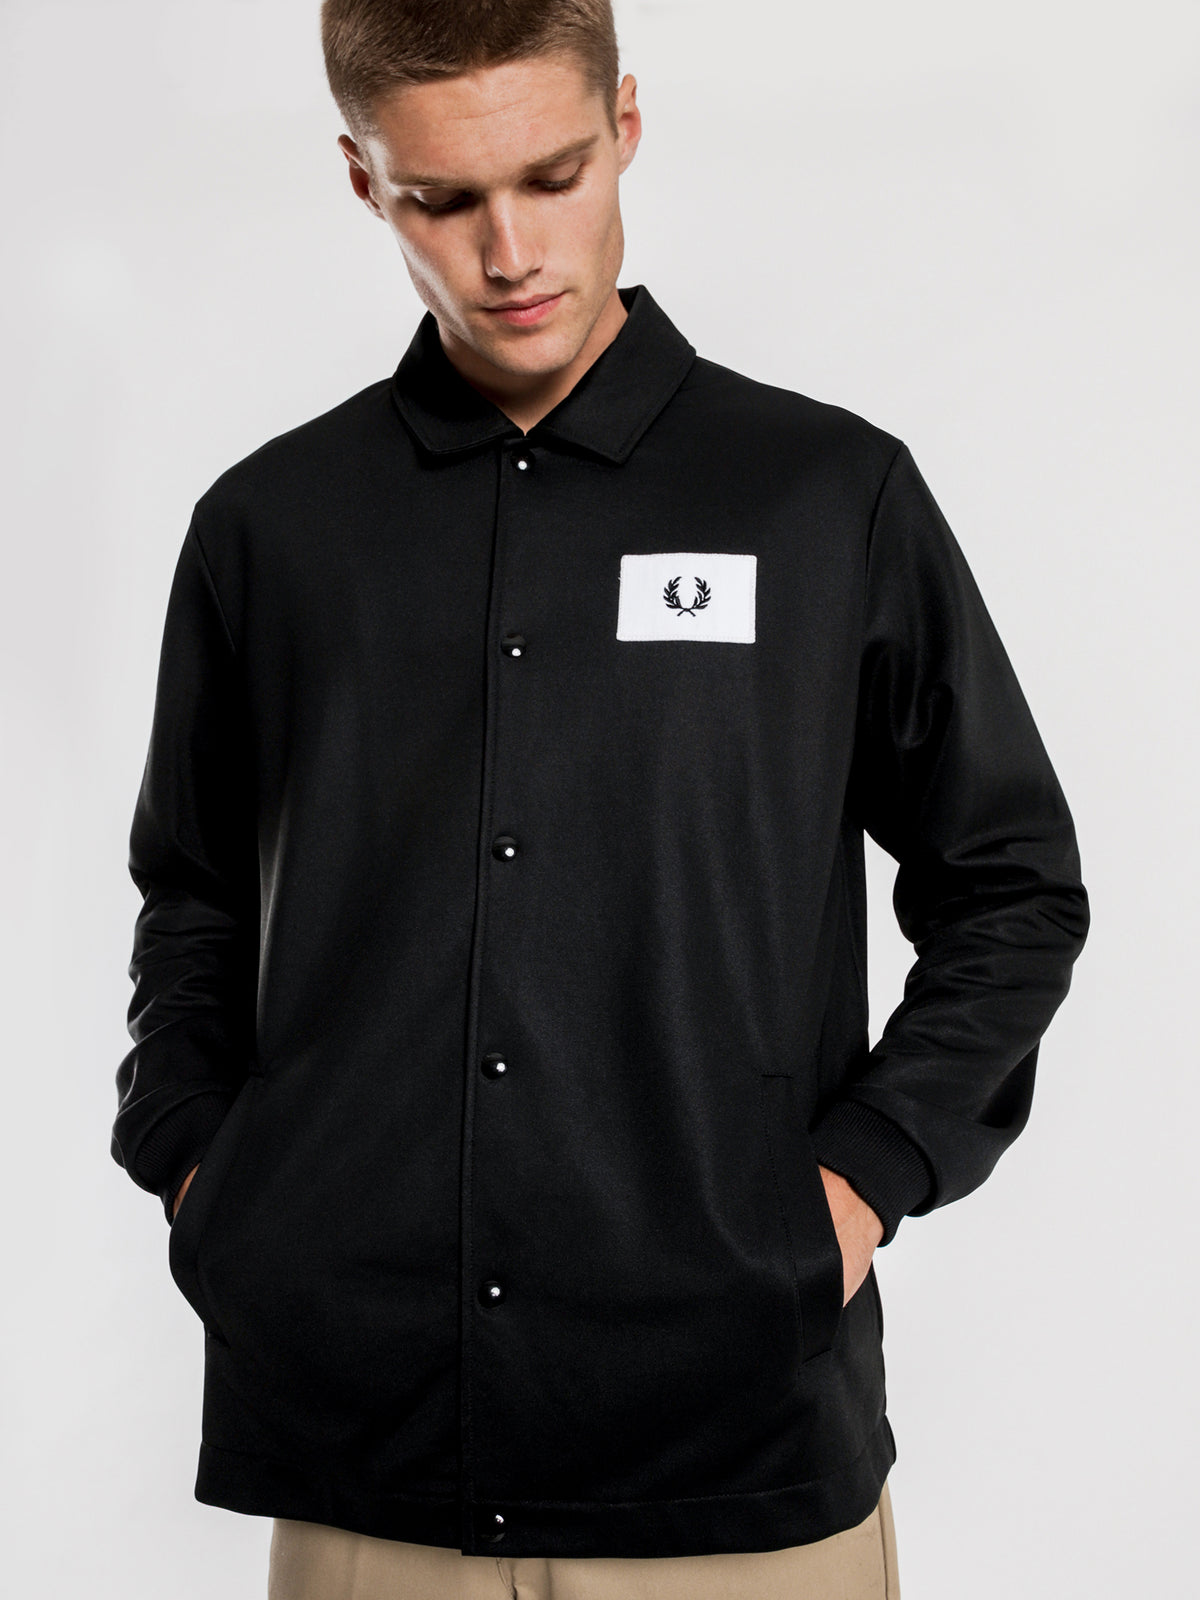 Acid Brights Coach Jacket in Black